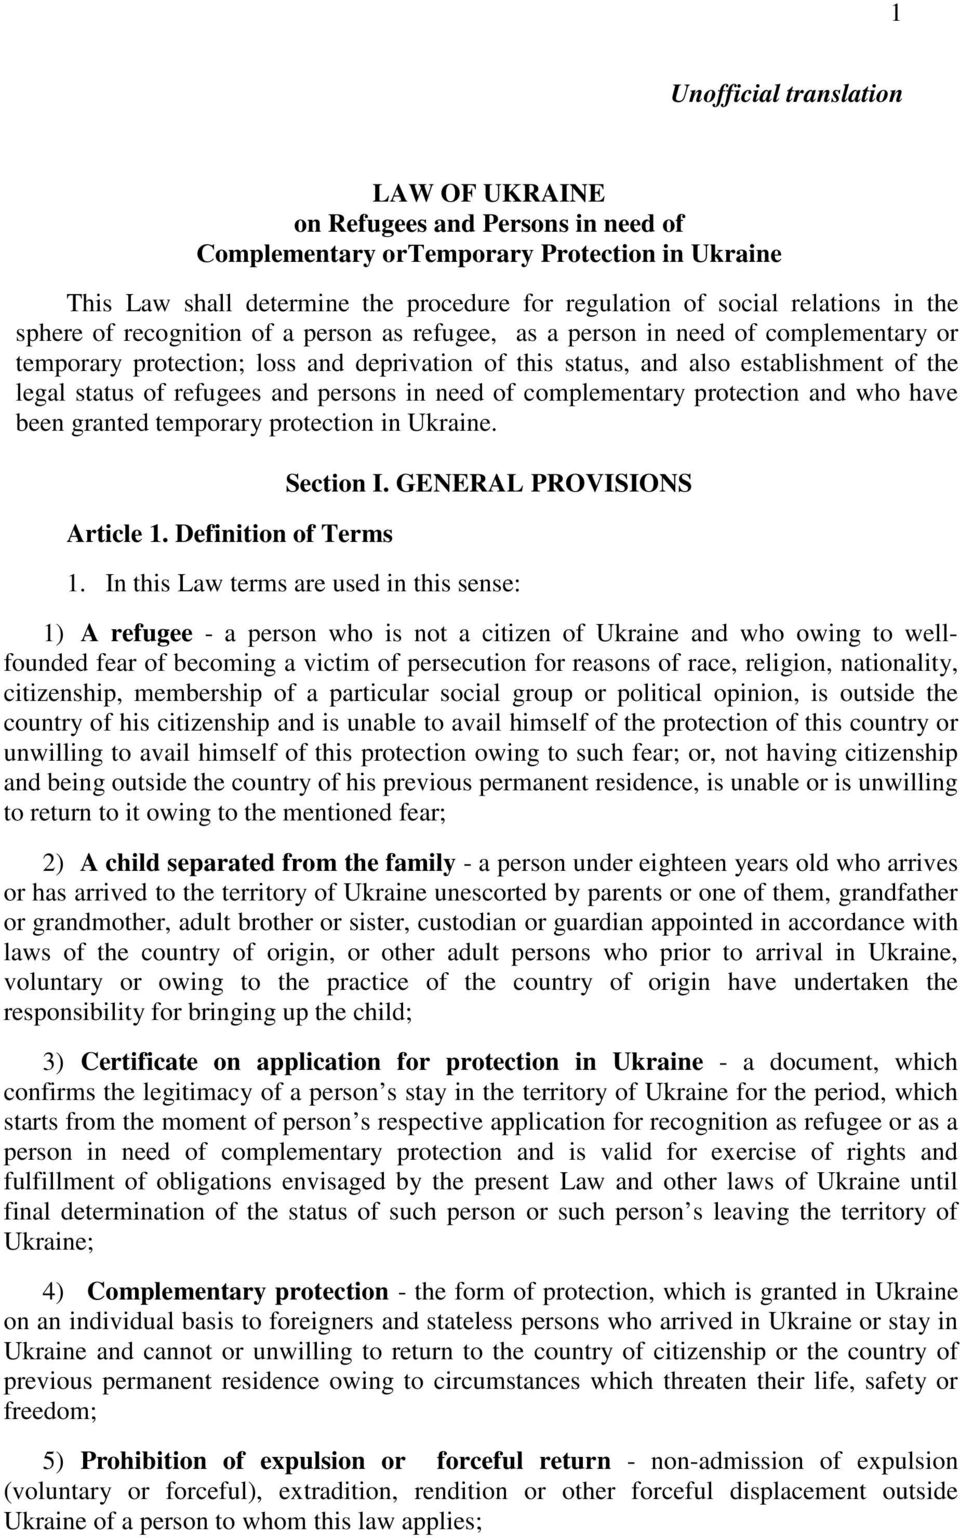 refugees and persons in need of complementary protection and who have been granted temporary protection in Ukraine. Article 1. Definition of Terms Section I. GENERAL PROVISIONS 1.